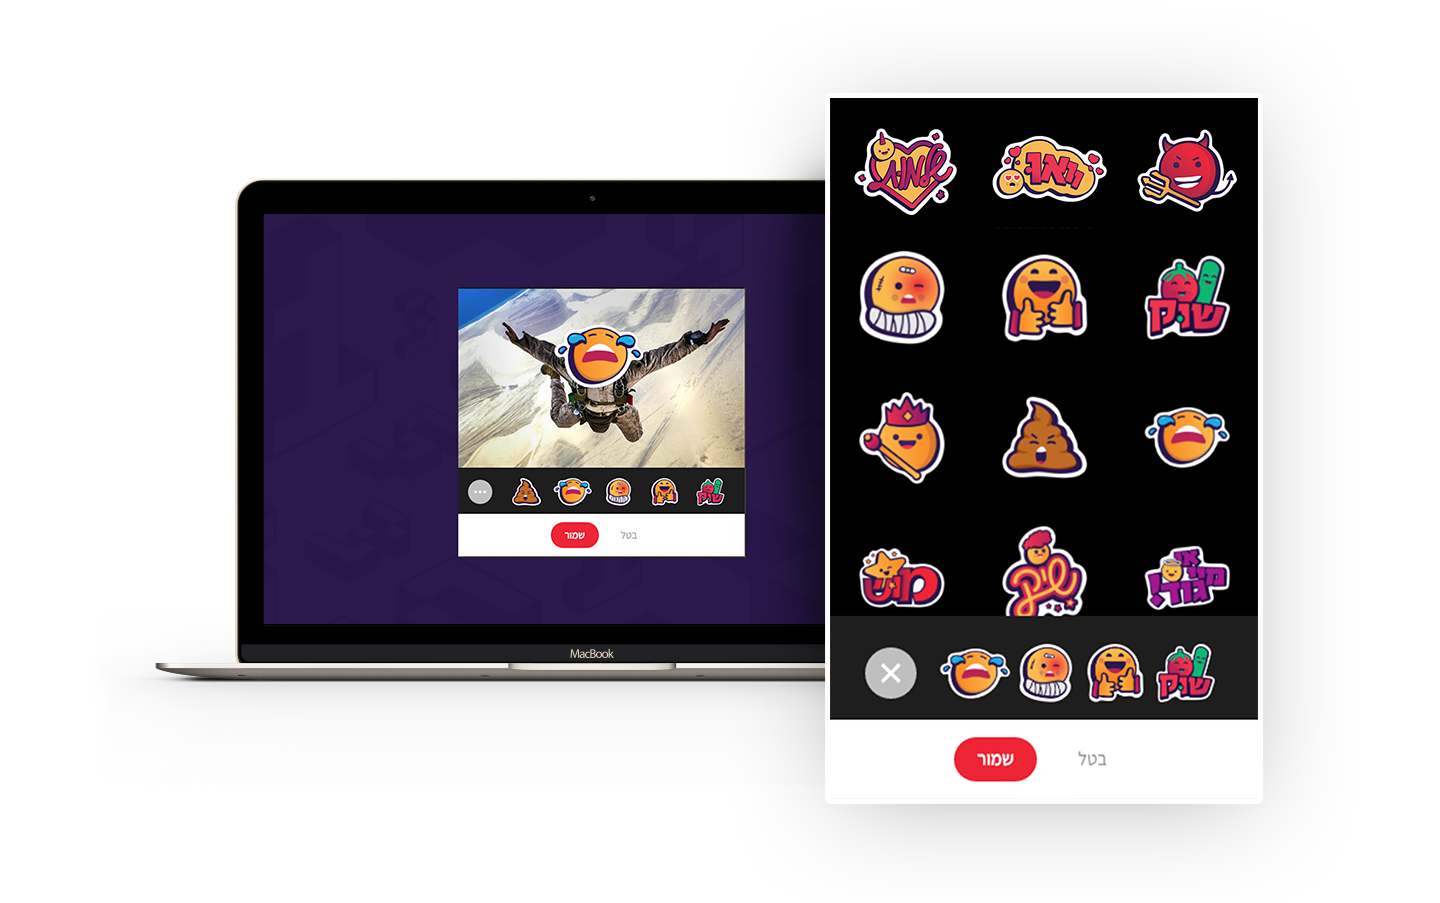 The stickers we illustrated and animated, users can add stickers to the images